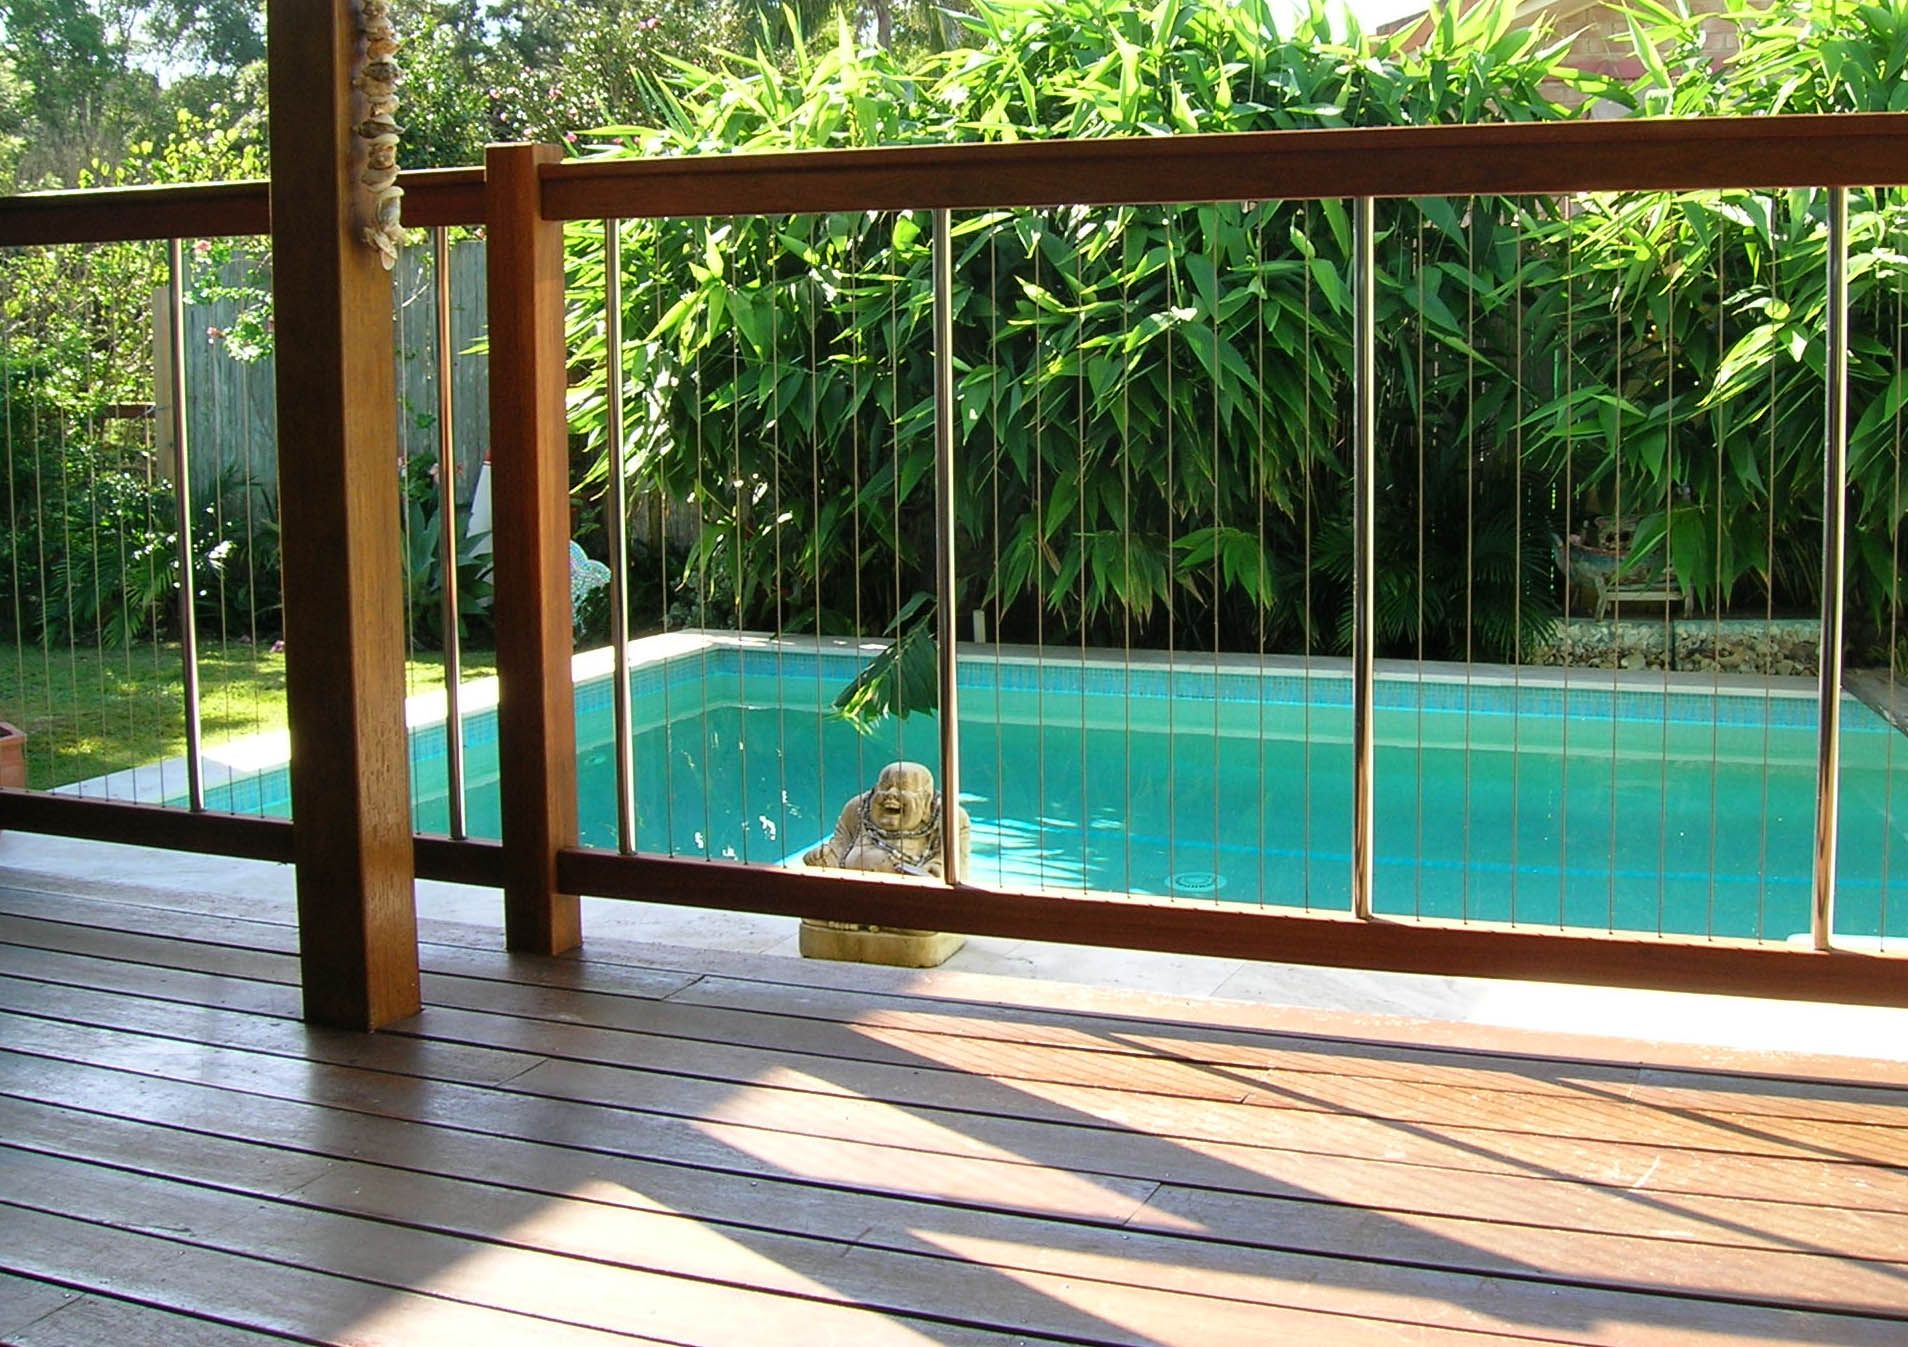 enchanting pool fence design ideas with modern architecture with brown wooden swimming pool fence and wooden